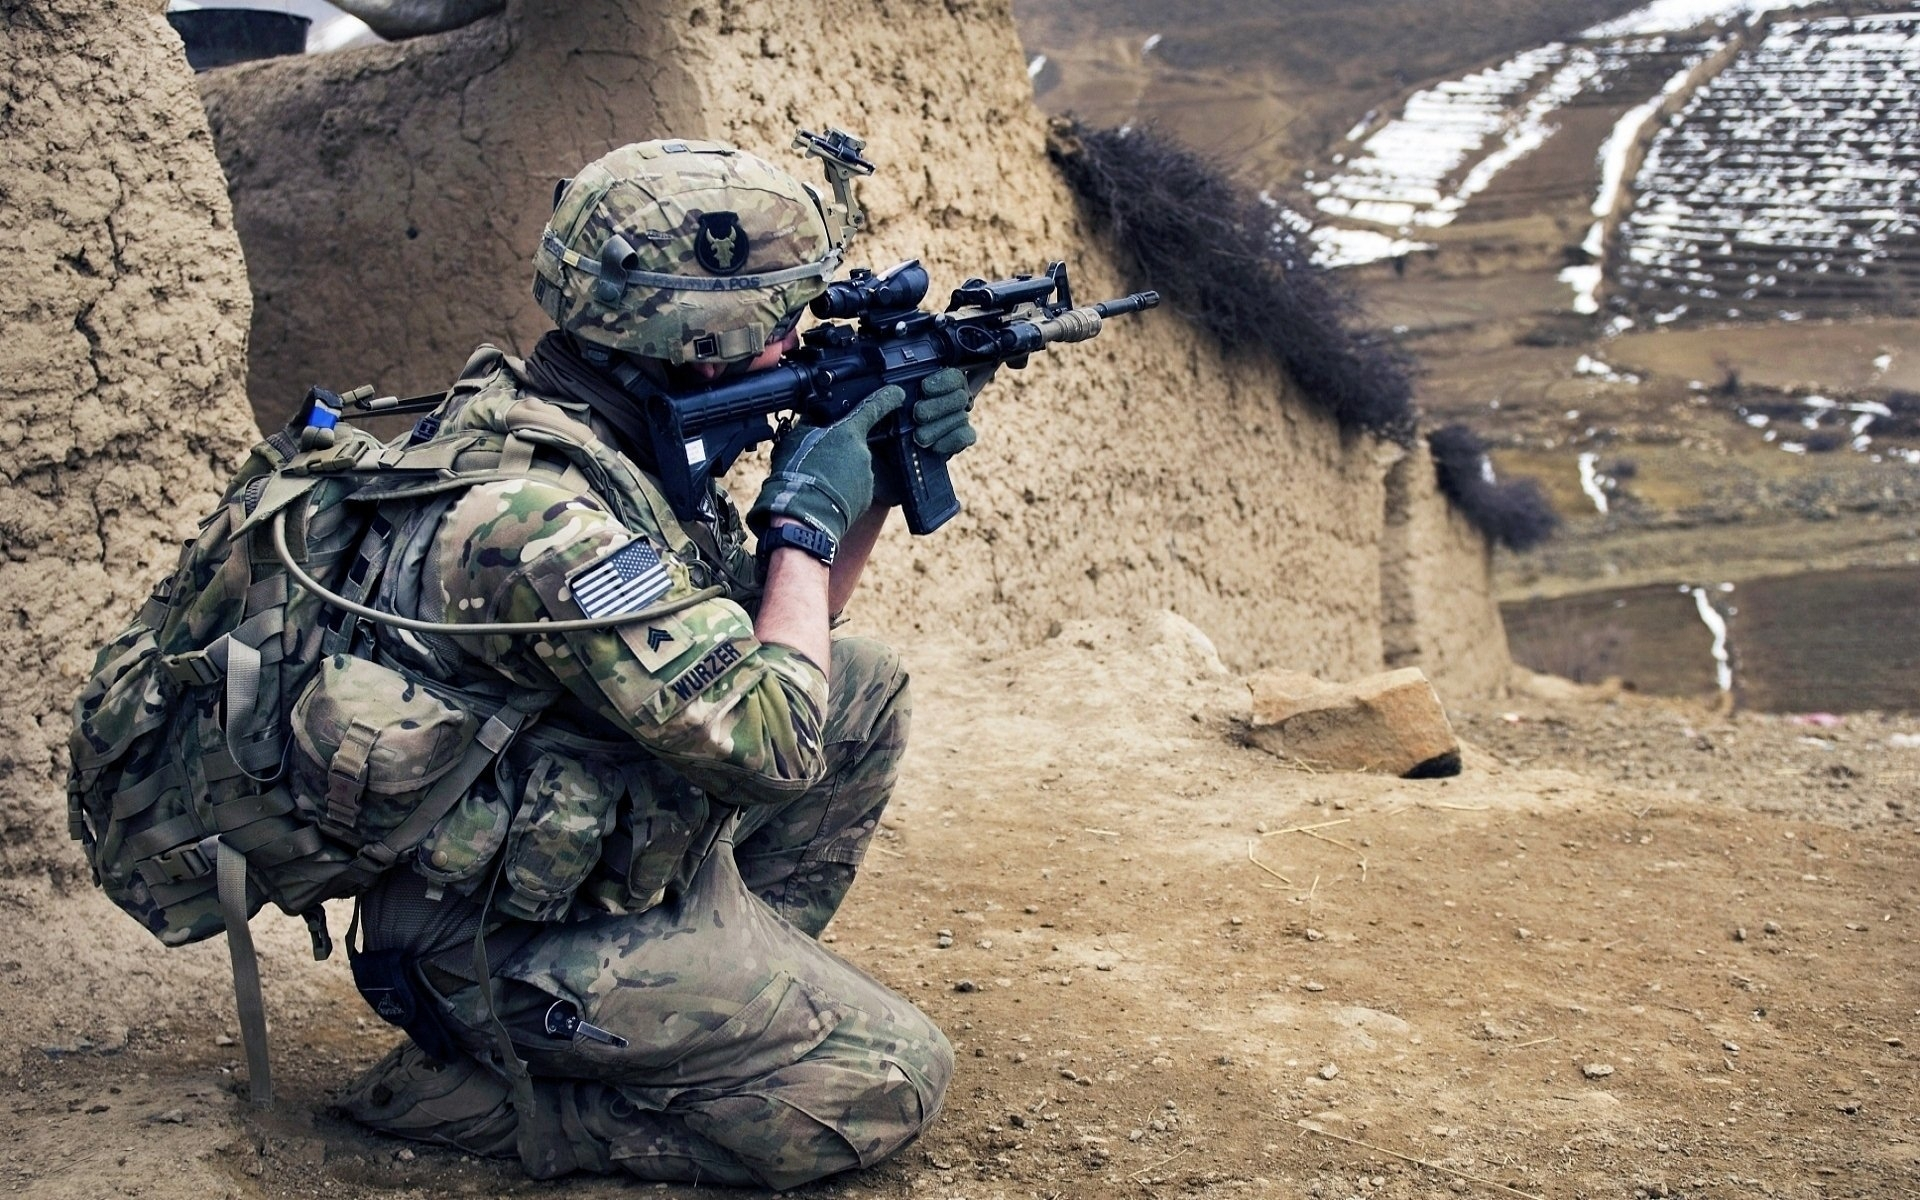 38 u.s. army infantry hd wallpapers | background images - wallpaper